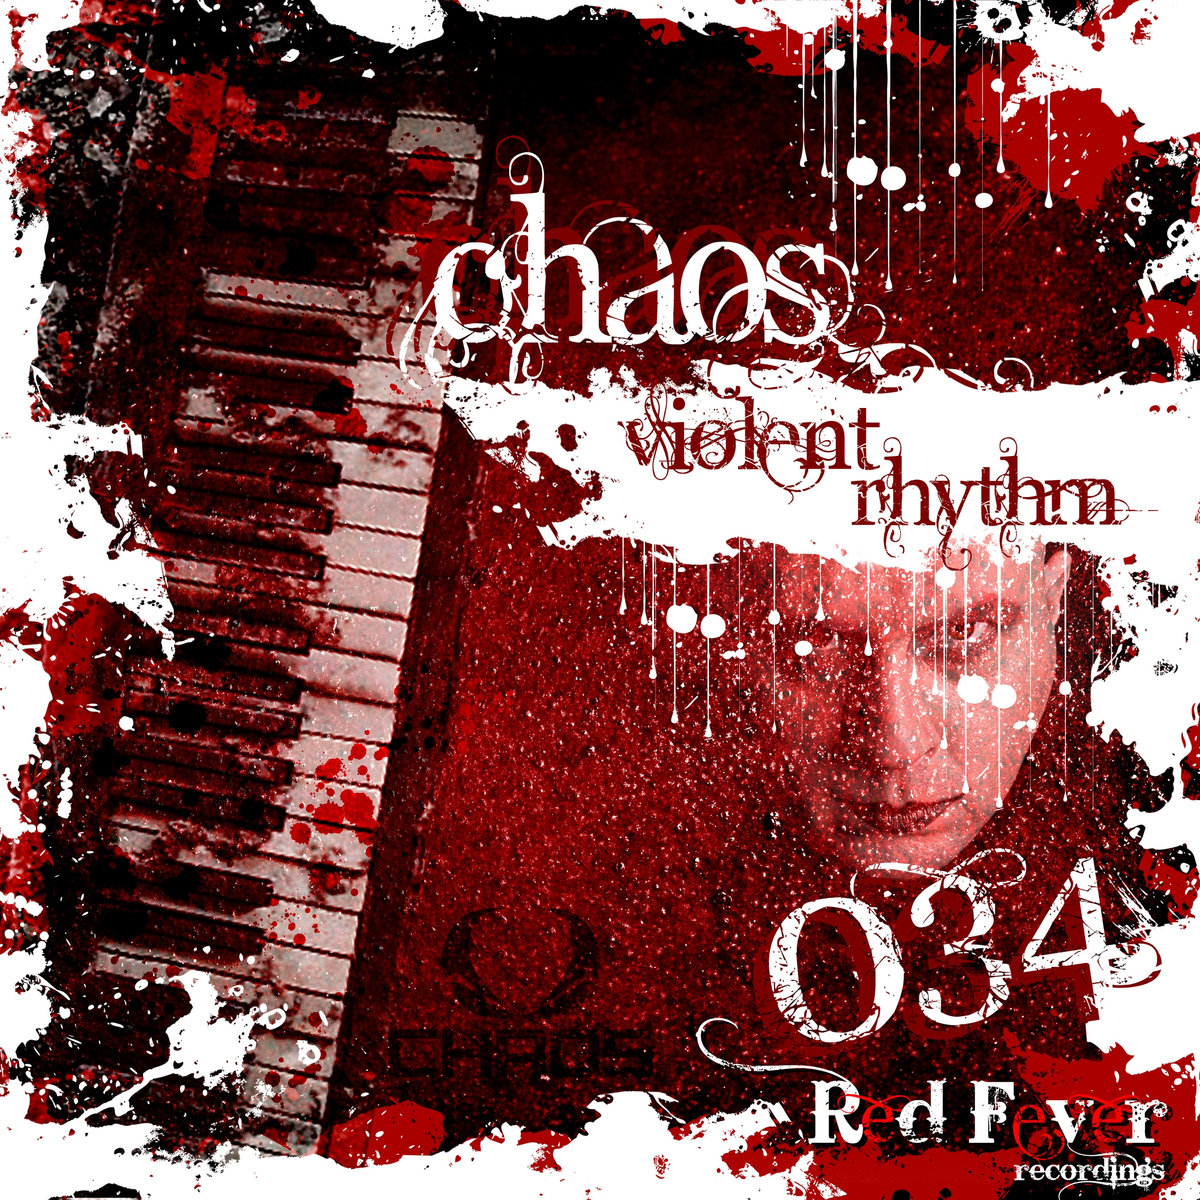 Chaos - Against You @ 'Violent Rhythm' album (electronic, chaos)